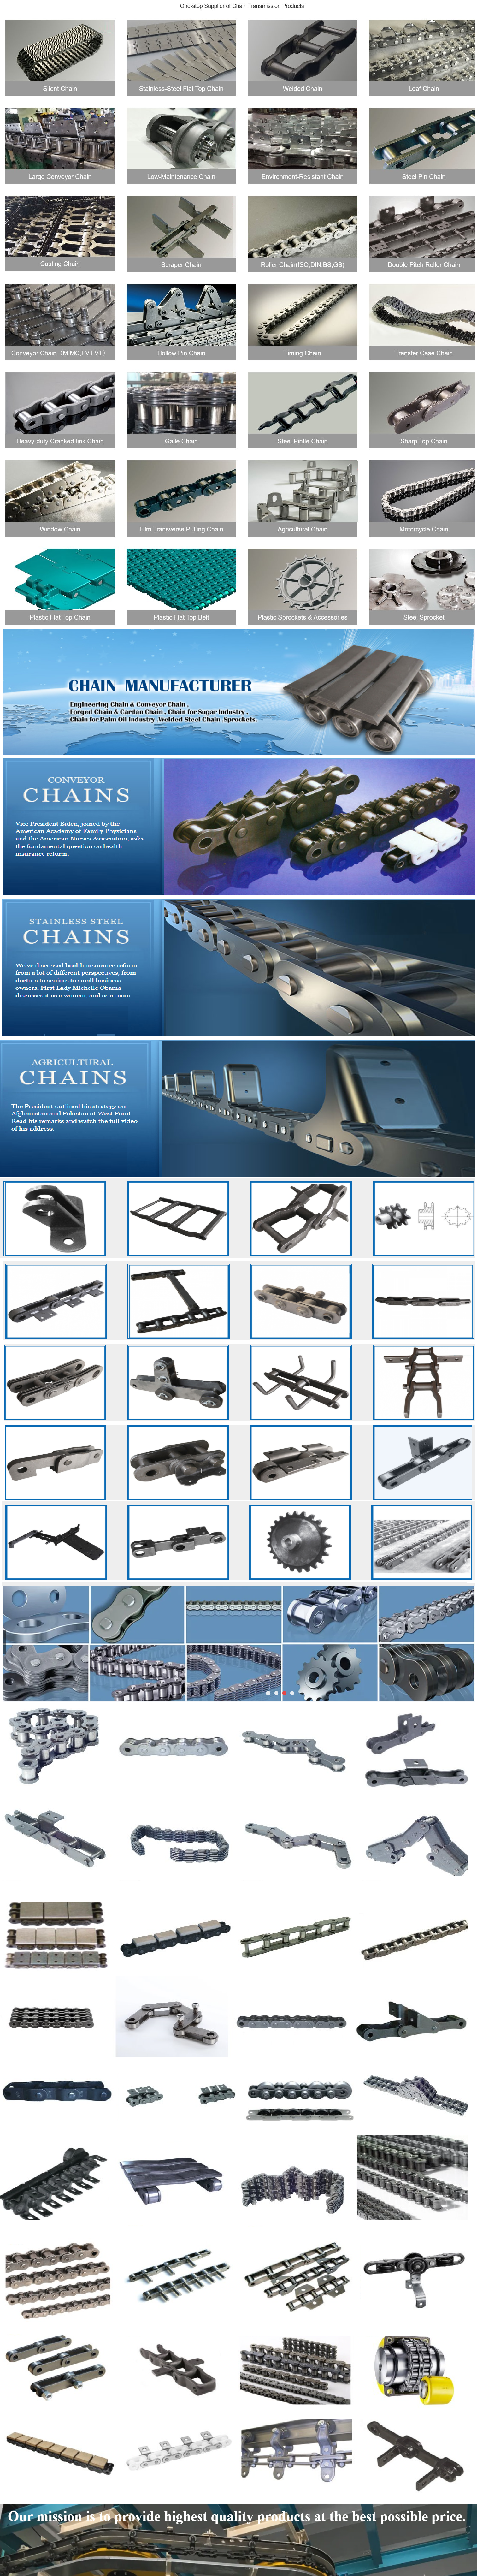 Widely  made in China - replacement parts - leaf chain types  in Yerevan Armenia  Used Rubber Added Industrial Conveyor Belt Chain  with ce certificate top quality low price